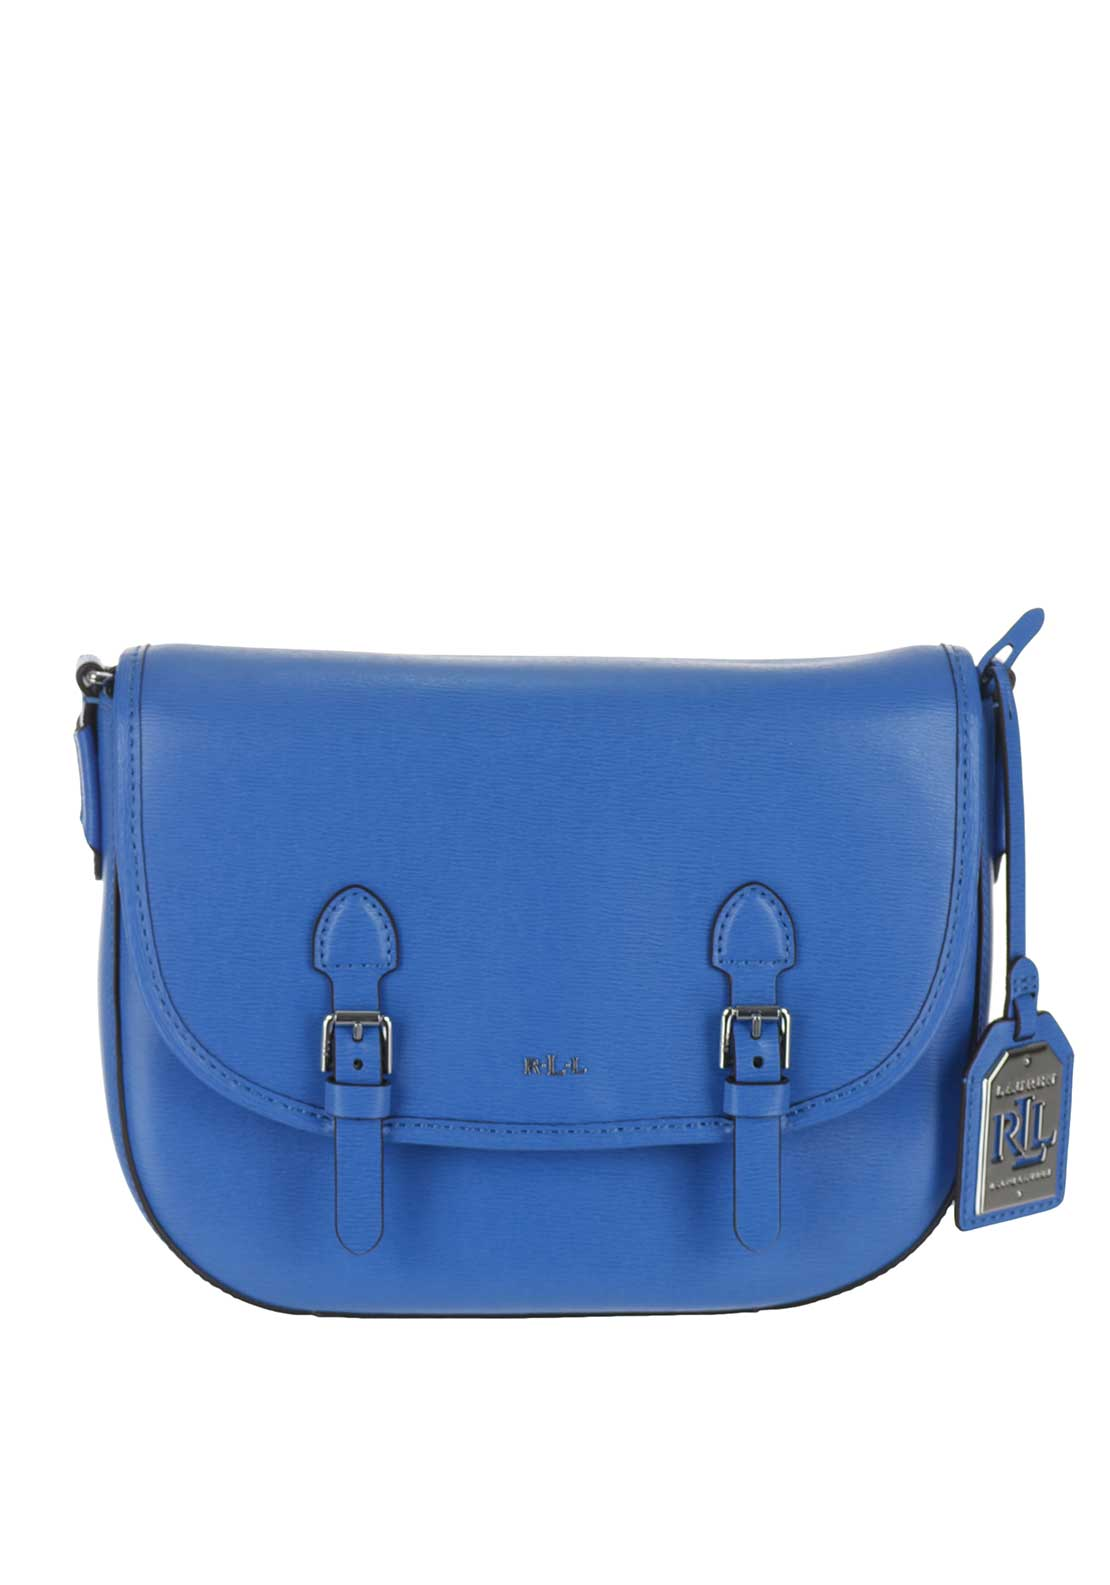 Ralph Lauren Messenger Leather Crossbody Bag, Cyan Blue